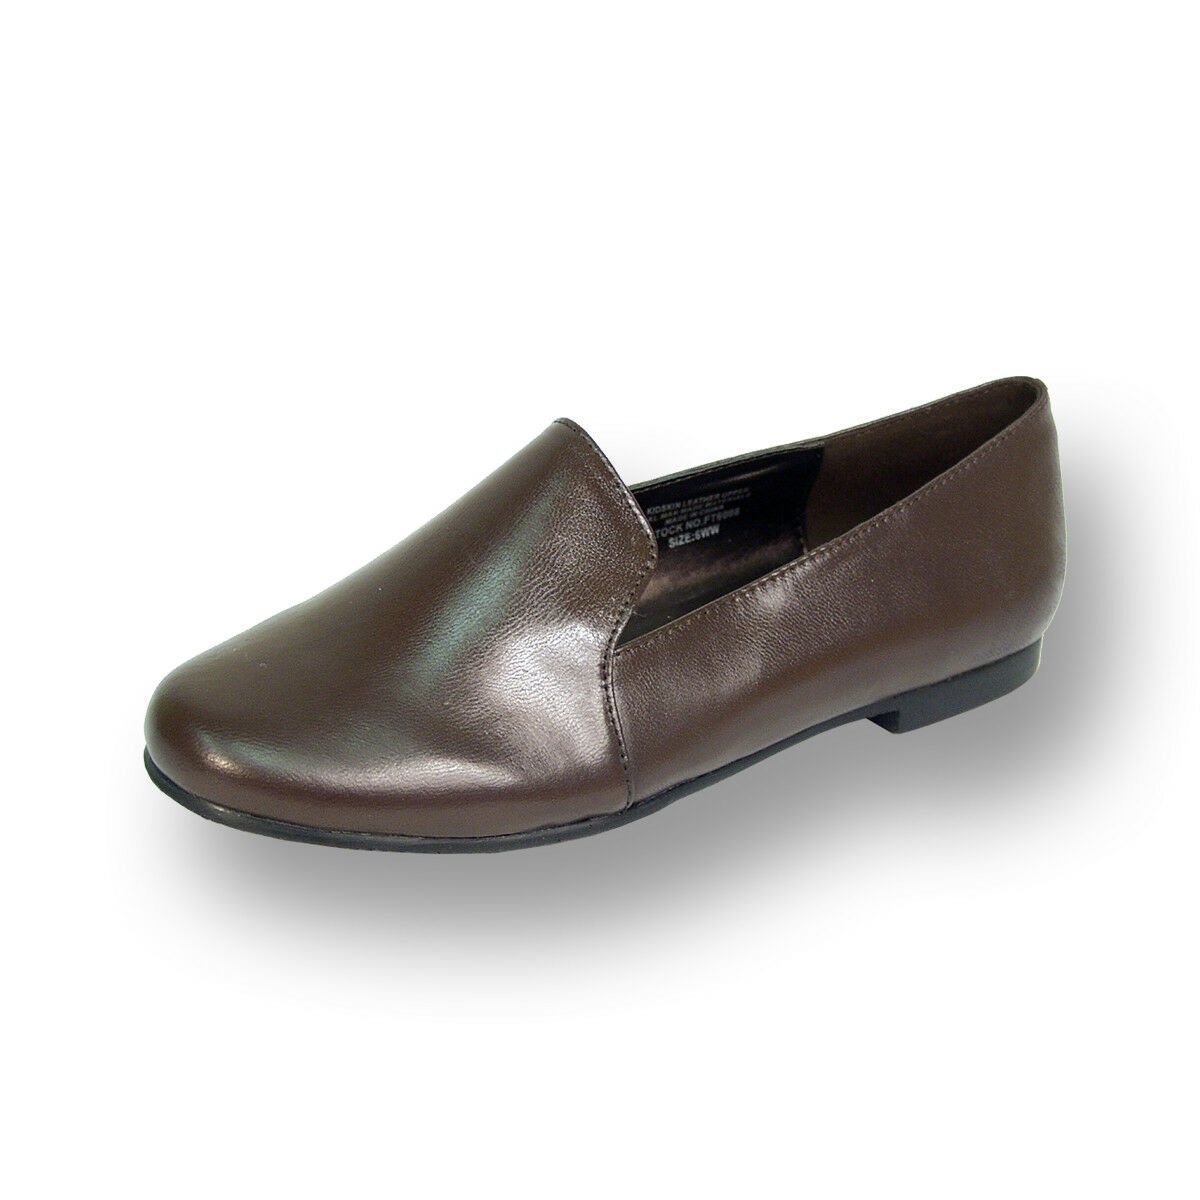 FIC PEERAGE Charlie Women Wide Width Leather Professional Smart Casual Flats